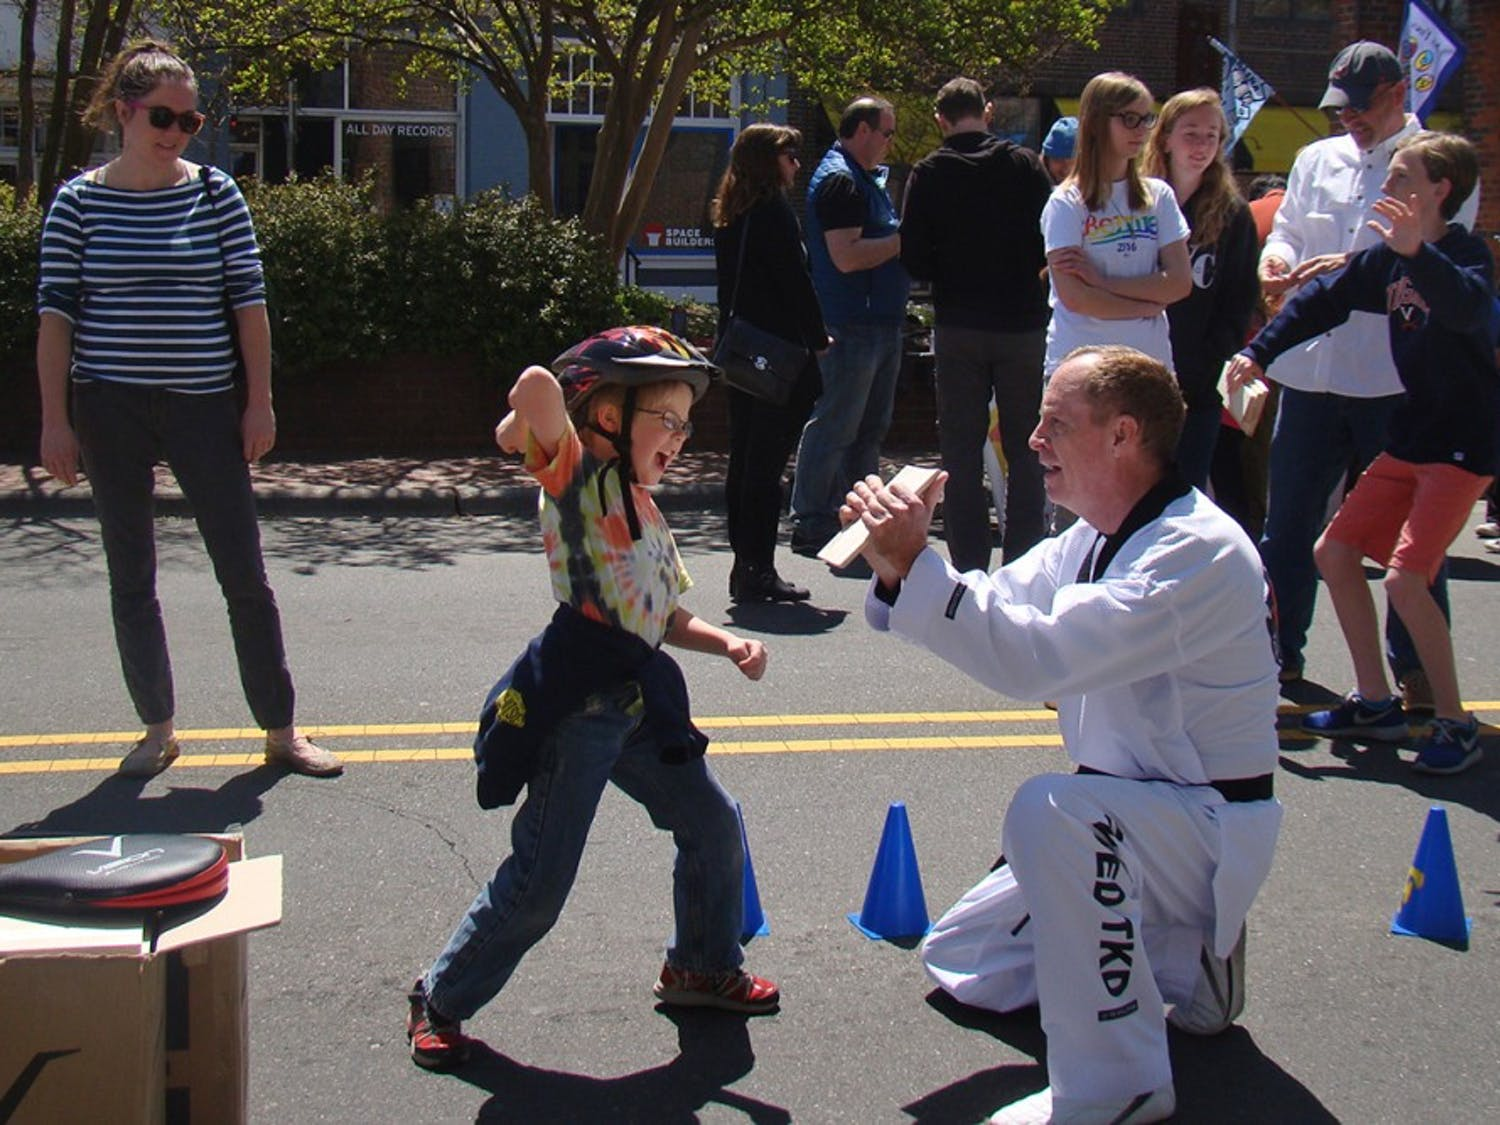 Elliot (8), of Carrboro, breaks a board as one of the many activities at Carrboro Open Streets festival on Sunday April 10th, on Weaver St.